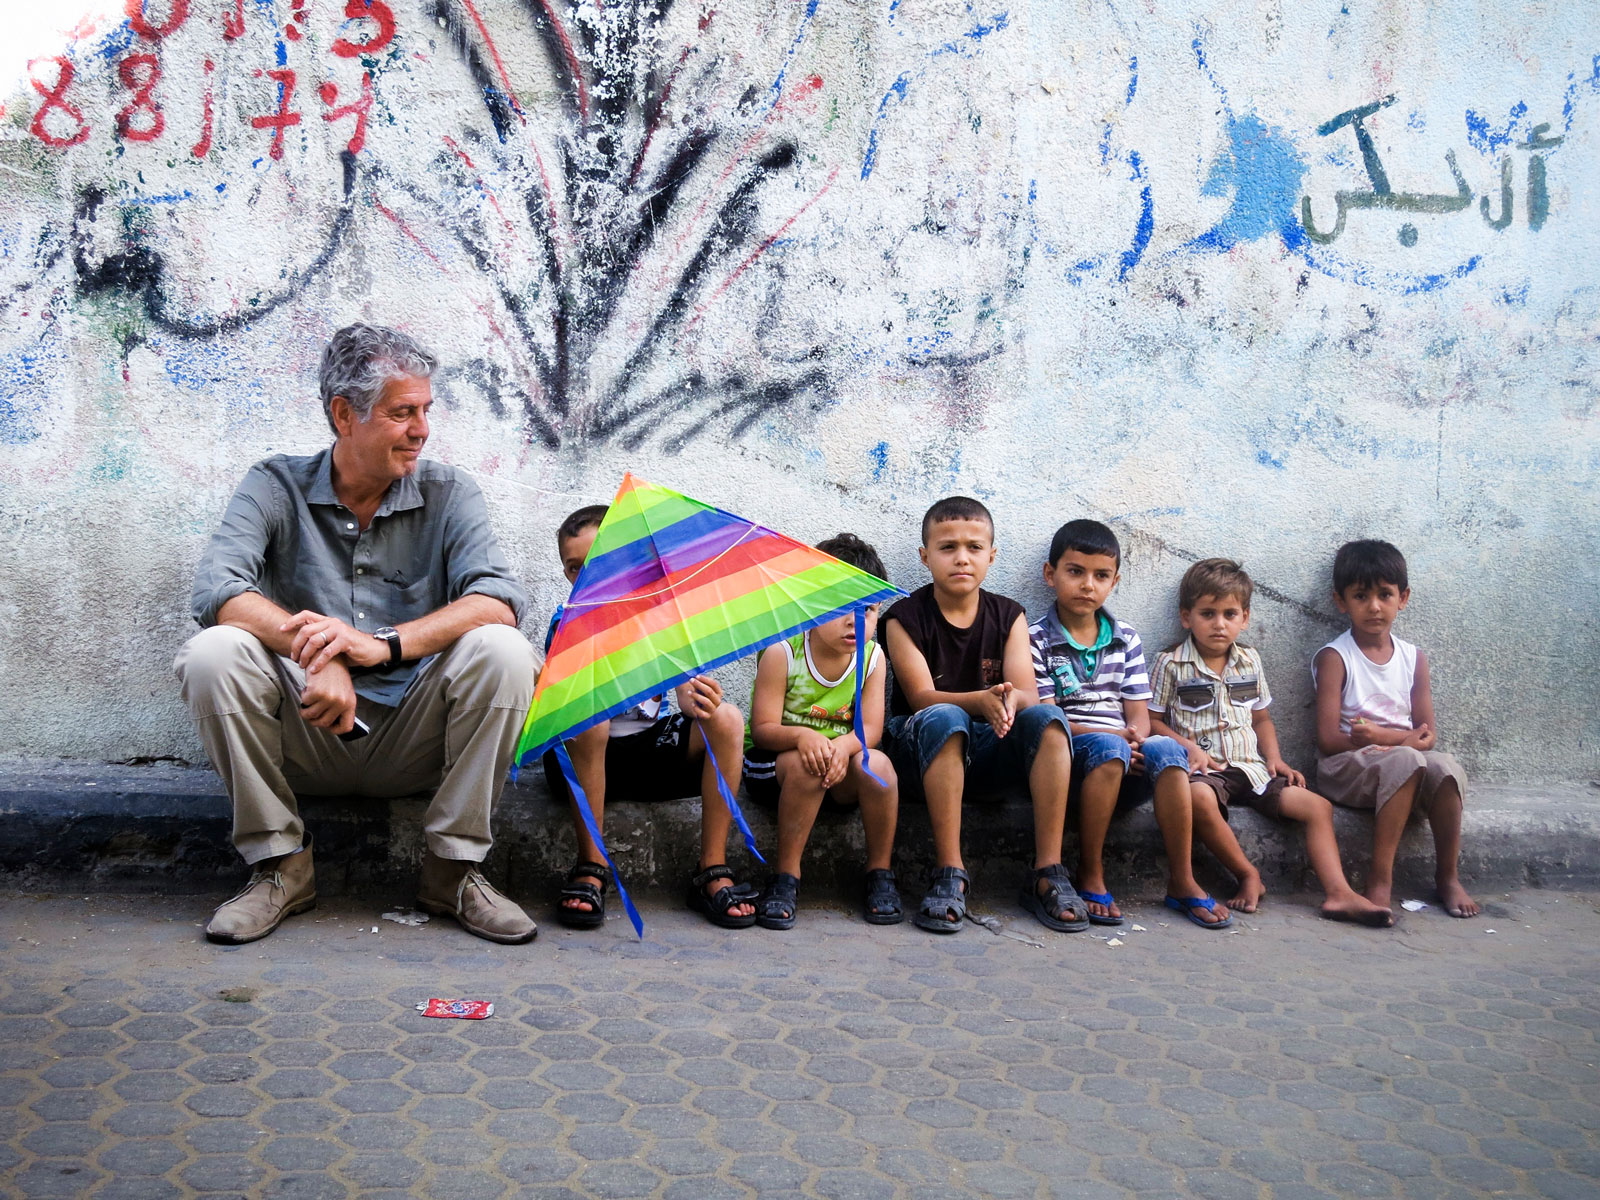 What to Expect from the First Special Episode of 'Anthony Bourdain Parts Unknown'